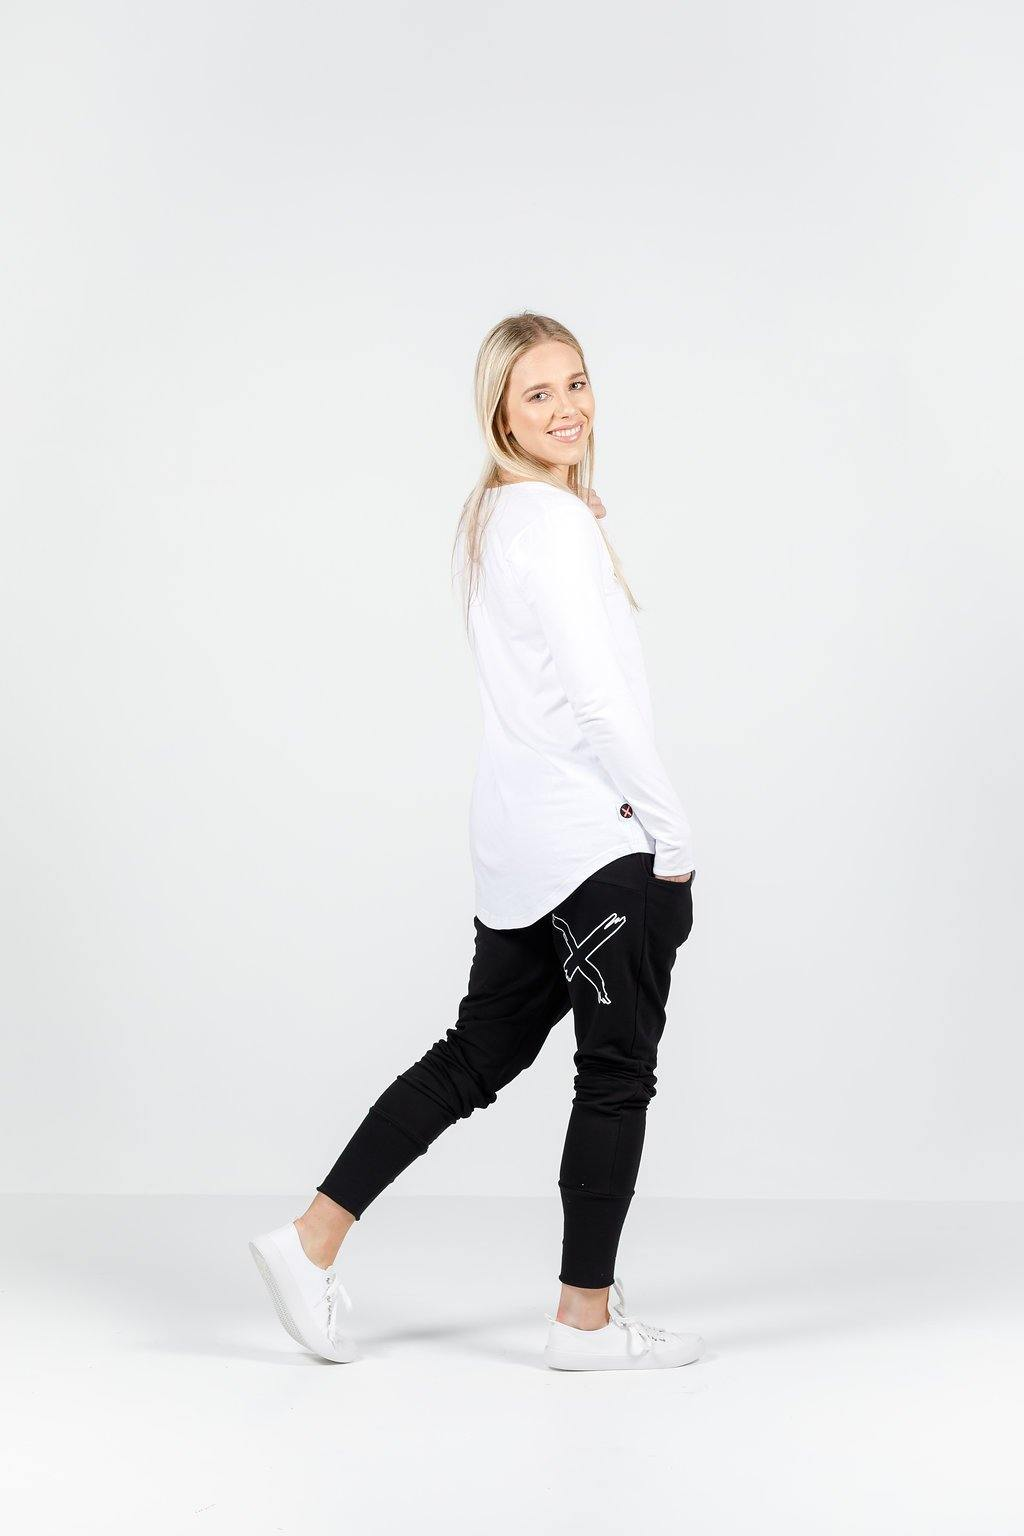 Apartment Pants-Black w White X   Winter Weight - HOMELEE - allaboutagirl